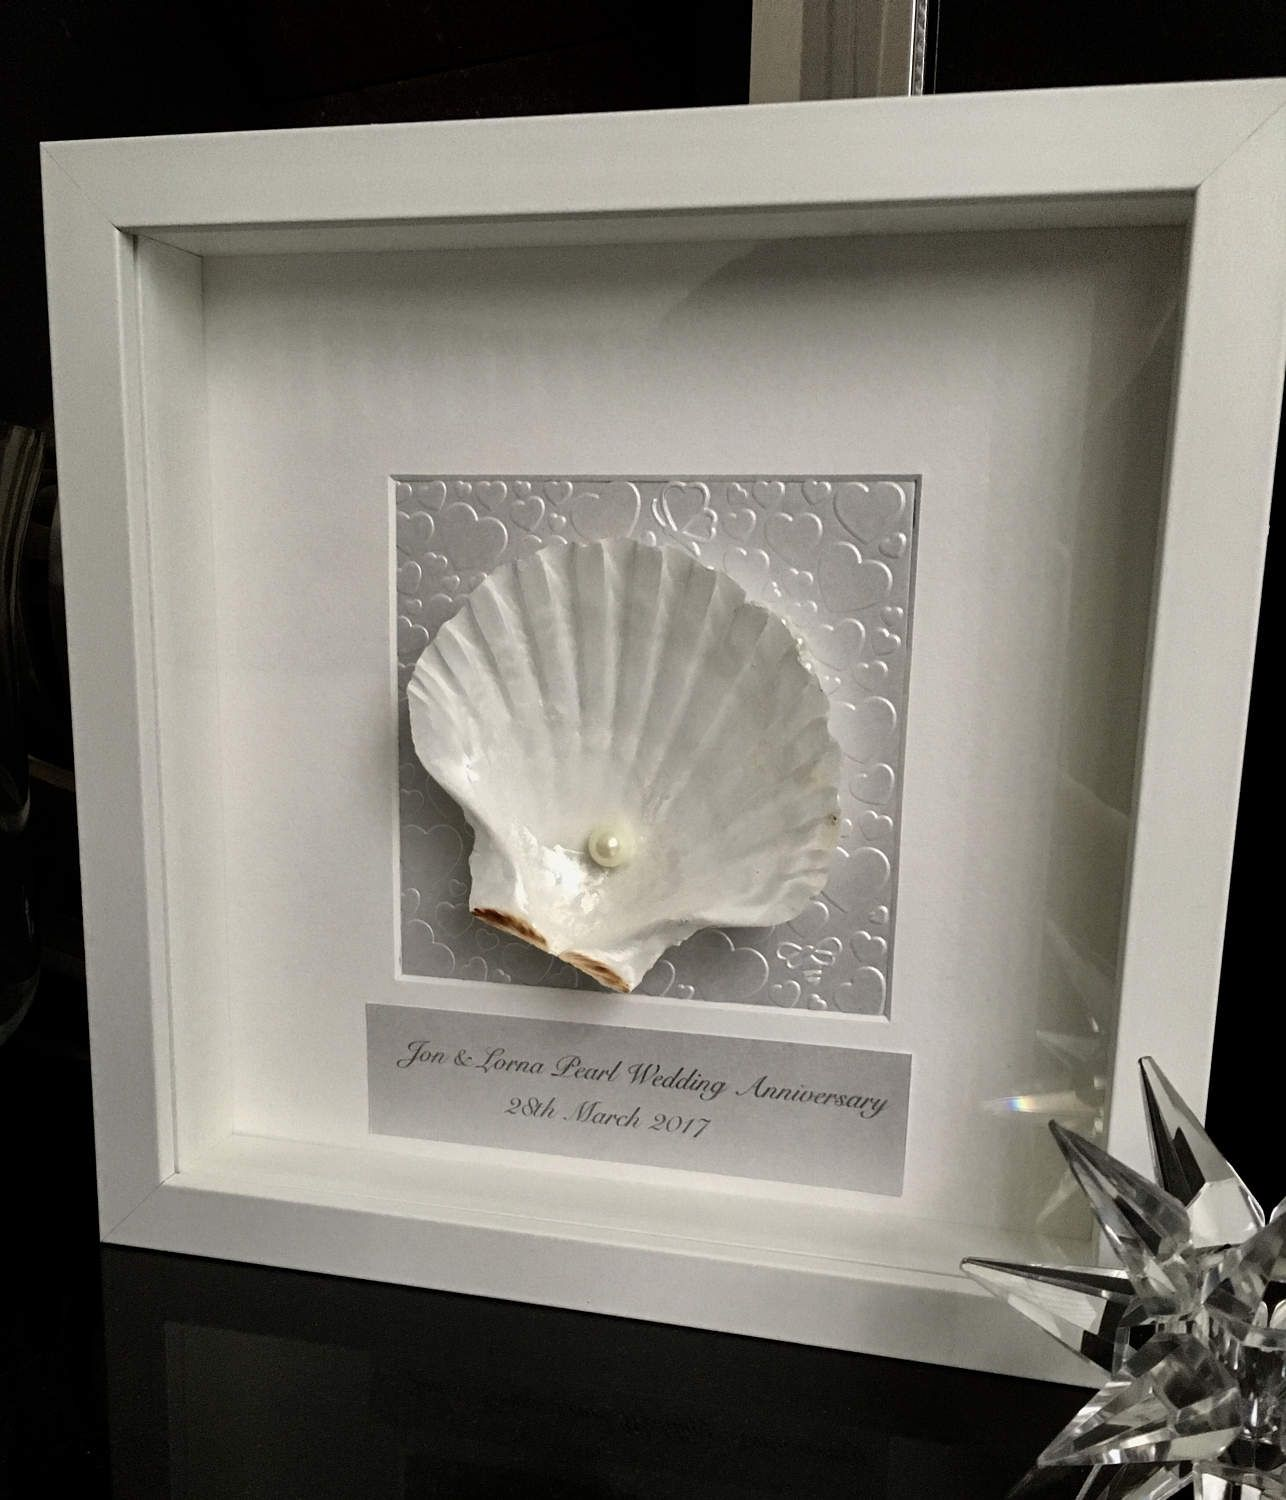 What Is The 30th Wedding Anniversary Gift: 30th Wedding Anniversary Gift, Shell Art Anniversary Gift